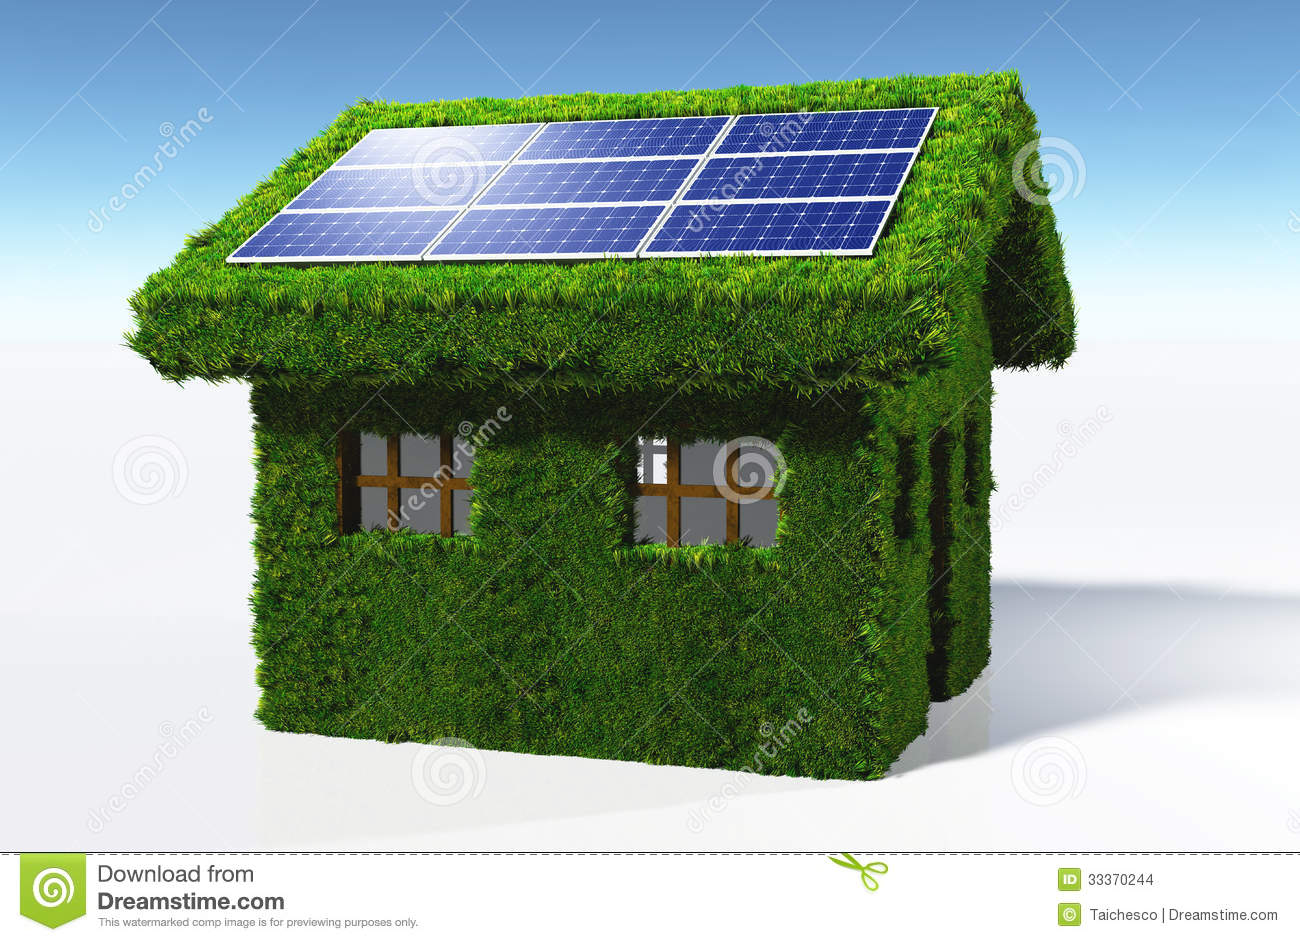 Grassy House With Solar Panels Stock Images Image 33370244